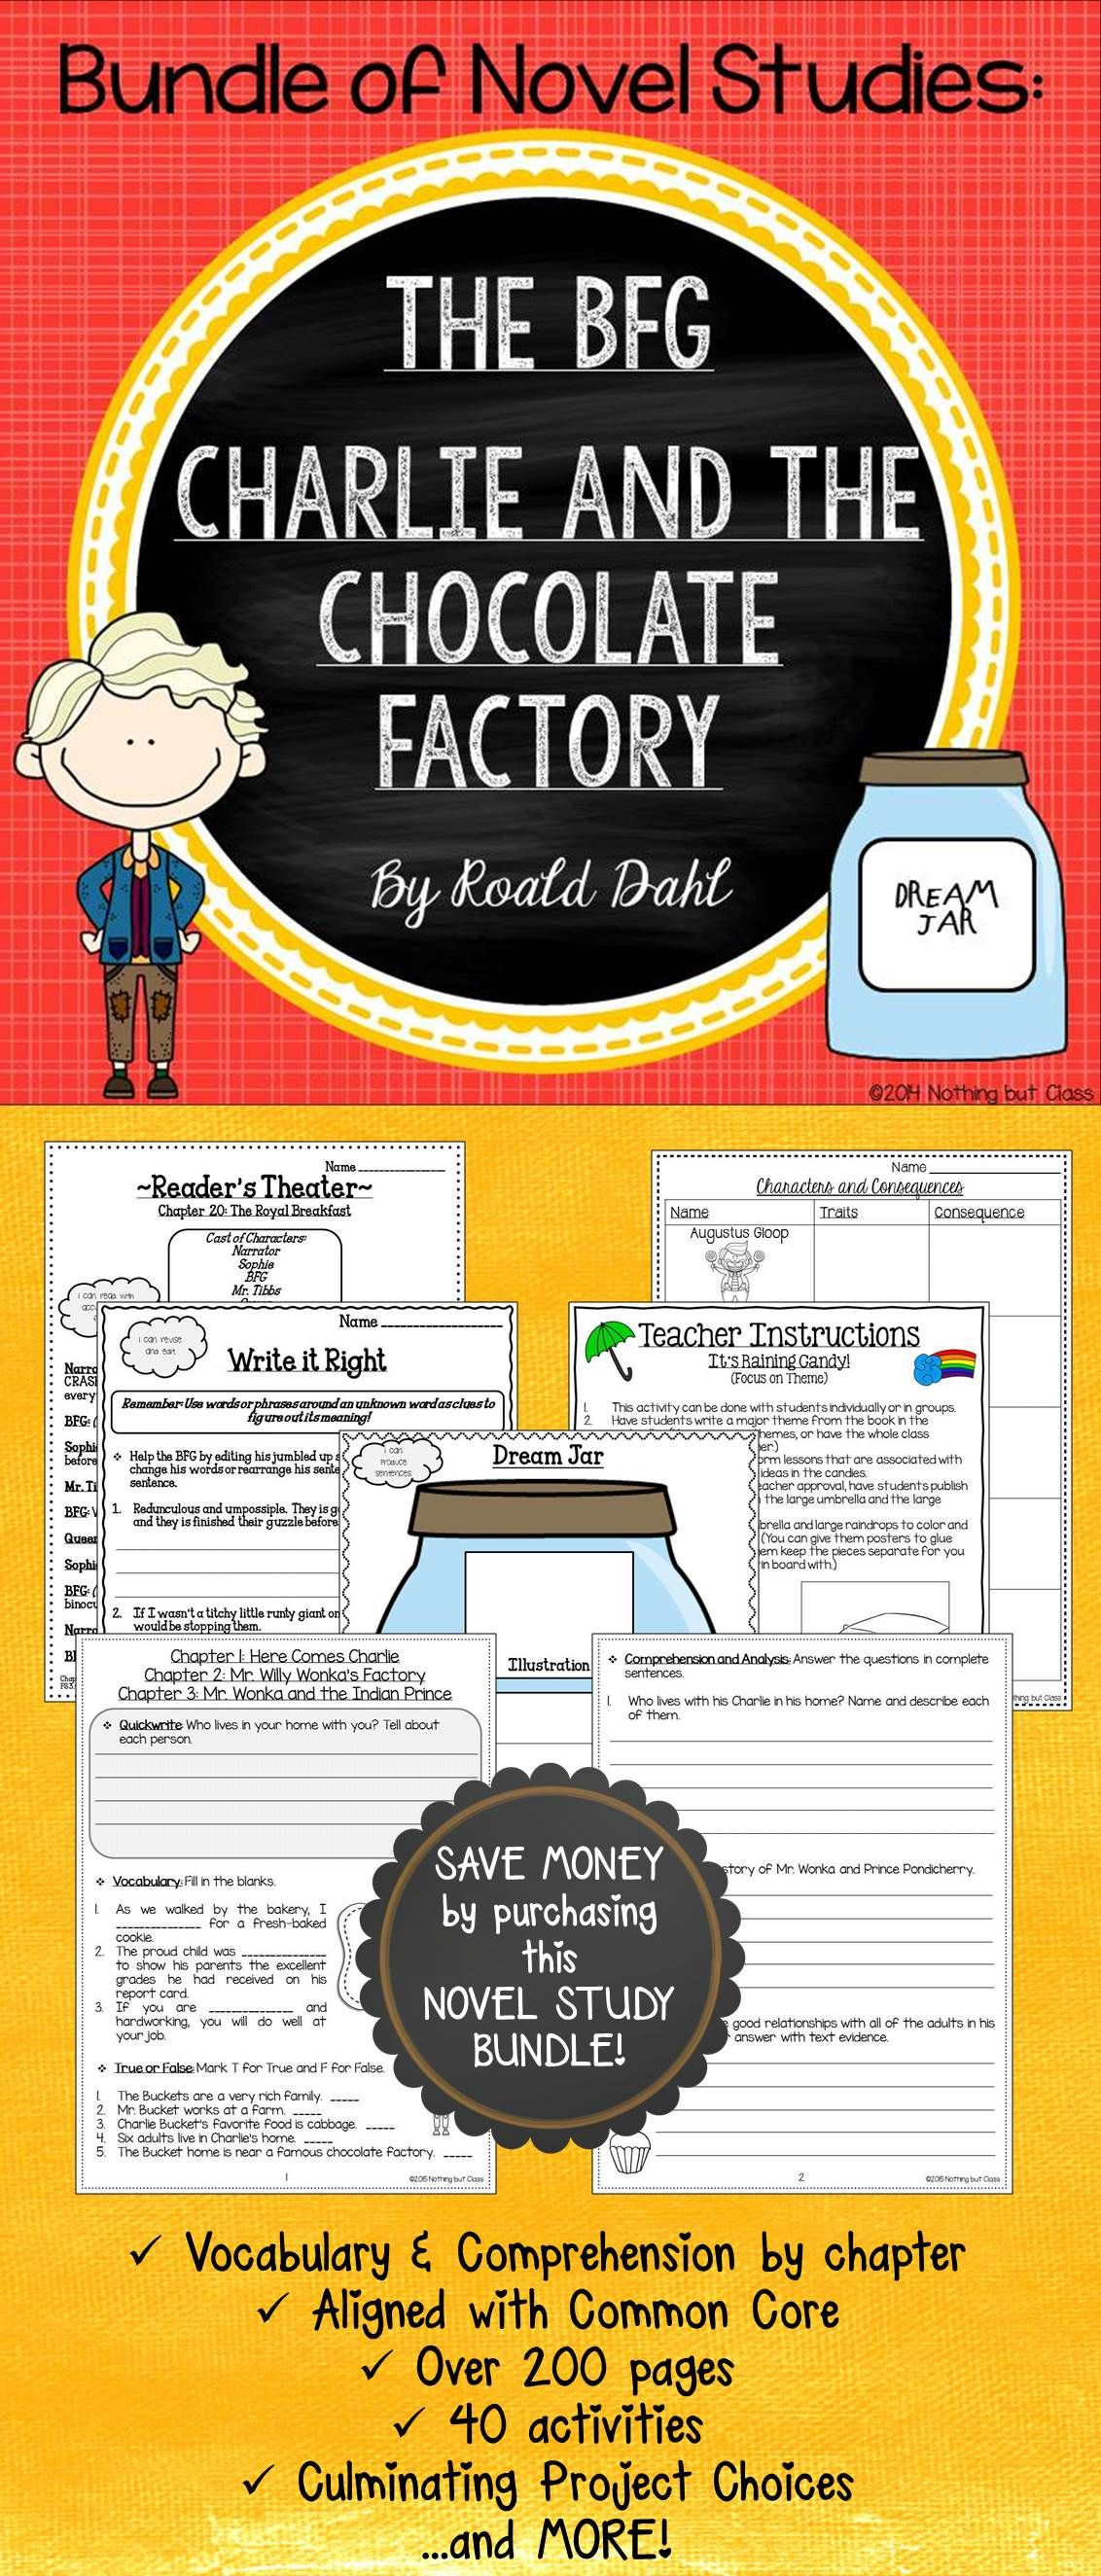 The Bfg And Charlie And The Chocolate Factory Novel Study